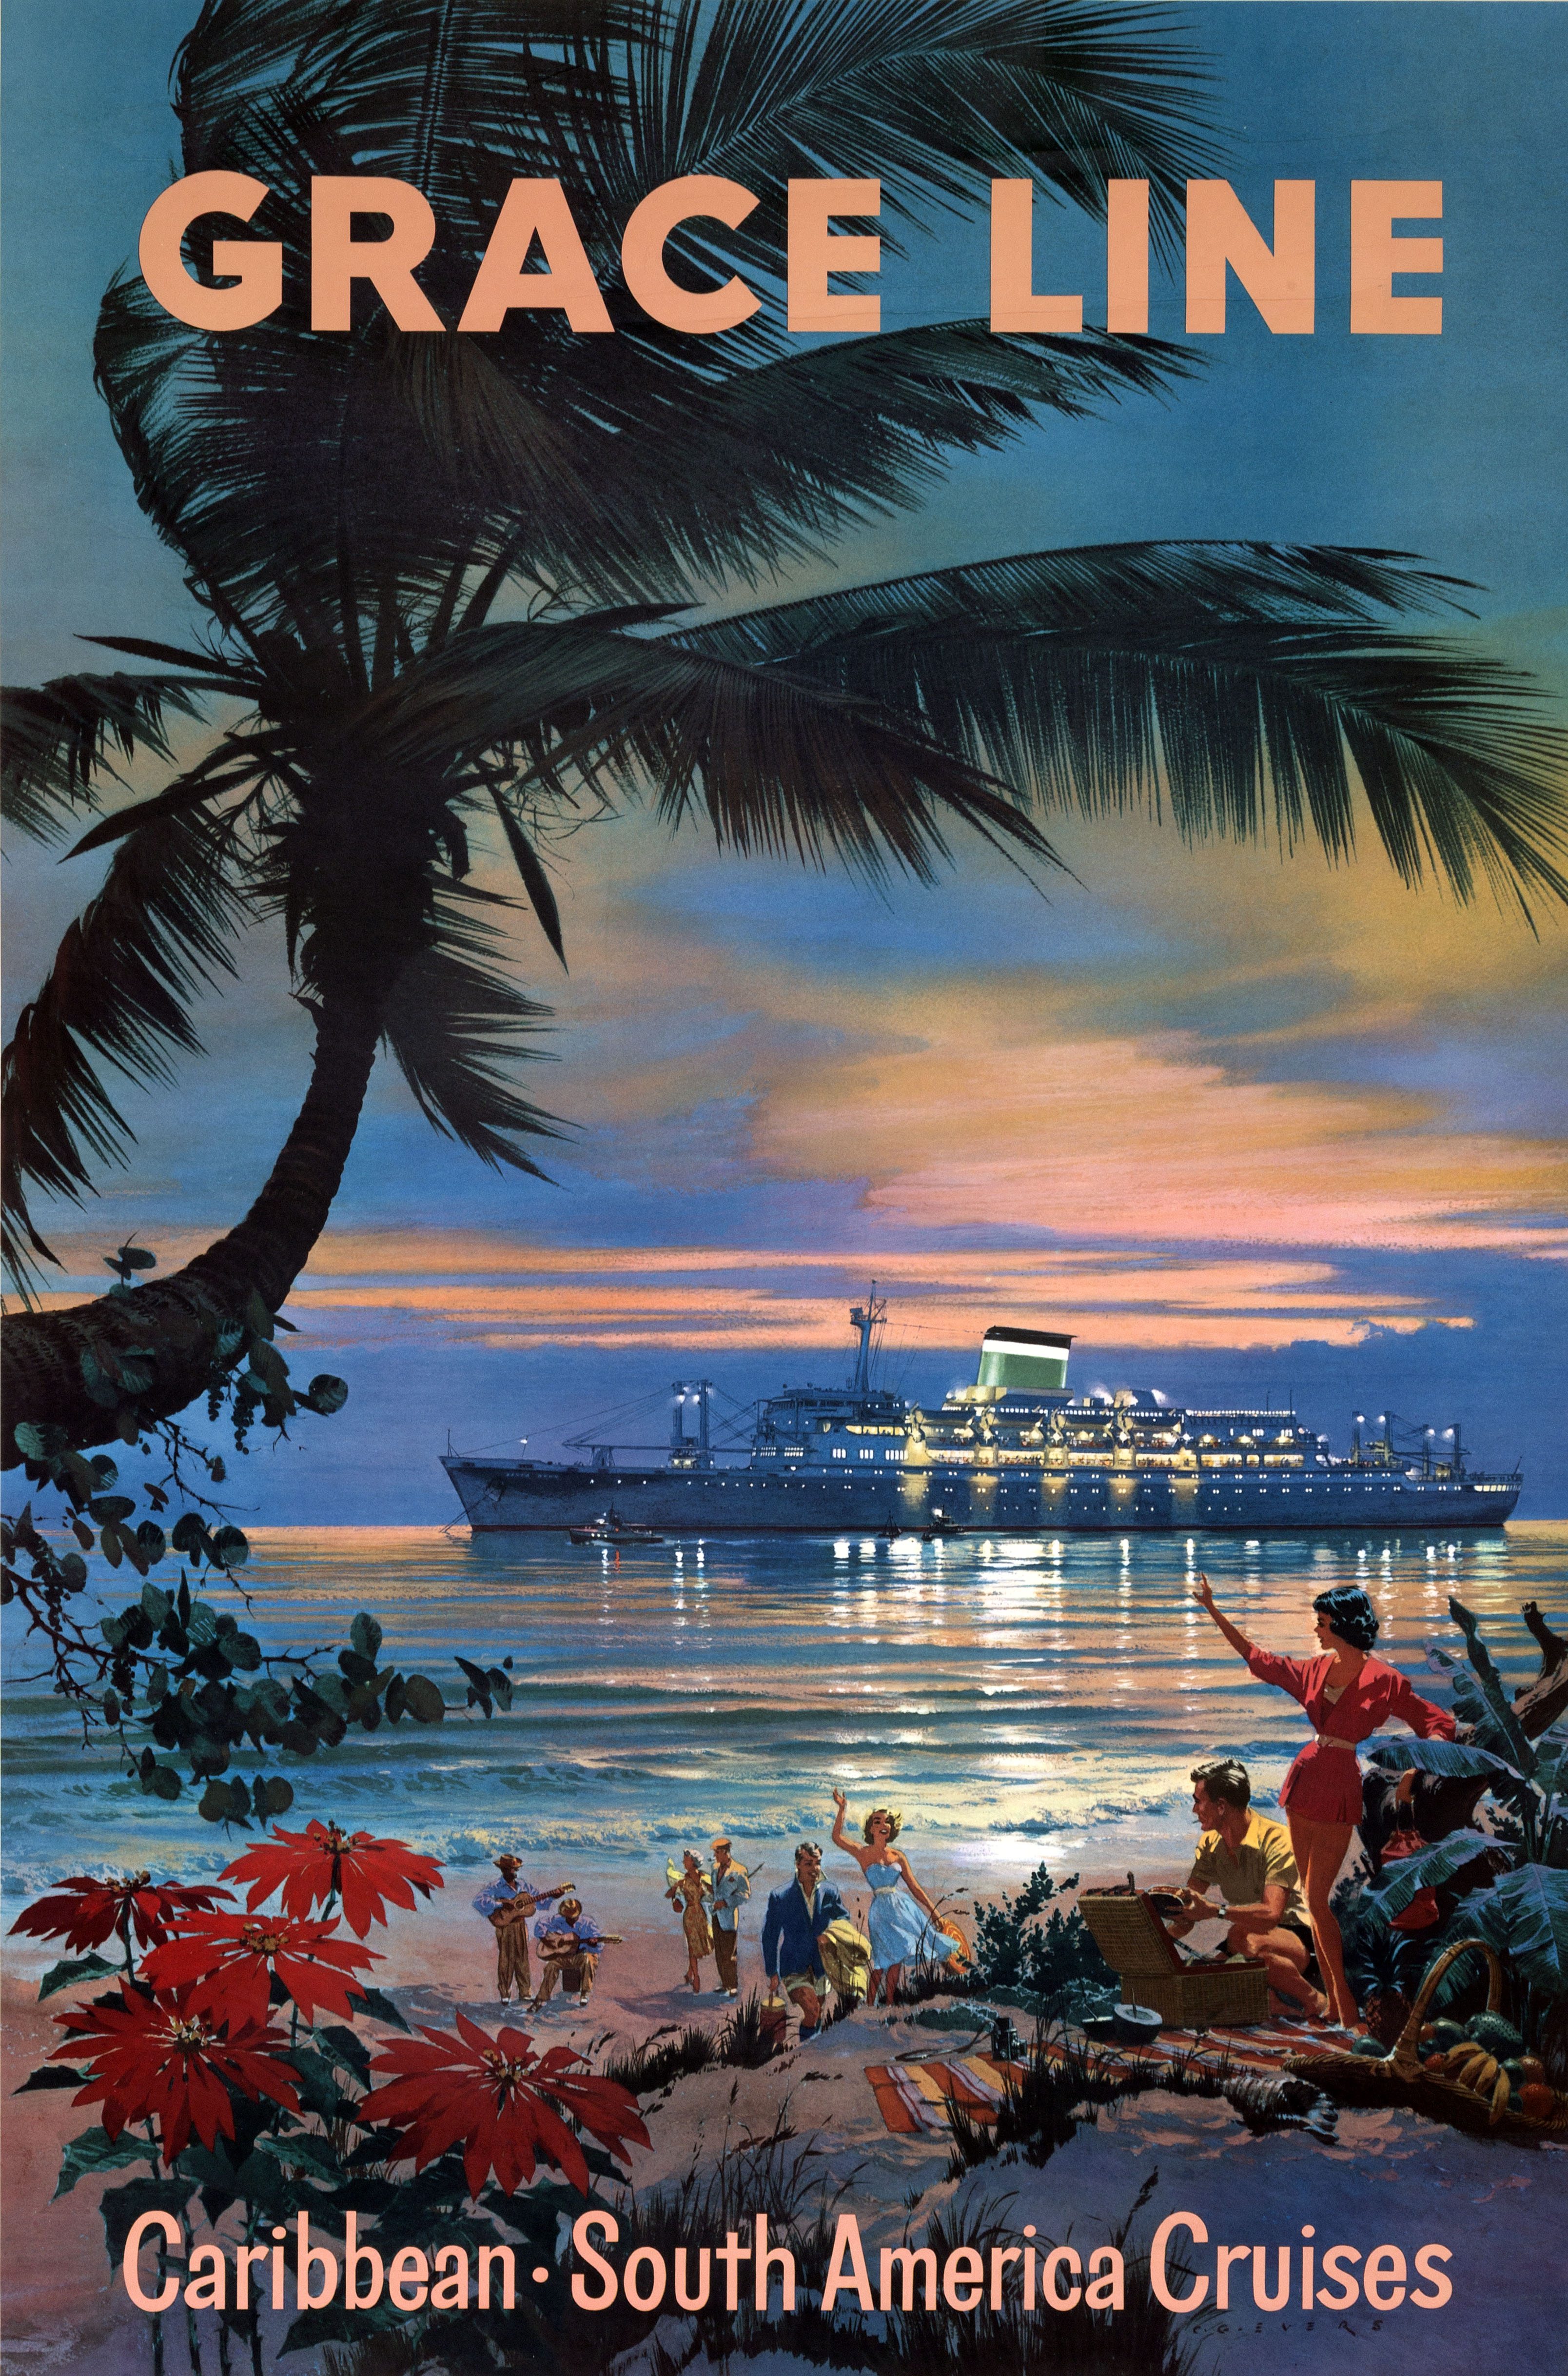 People on beach looking at cruise ship at sea